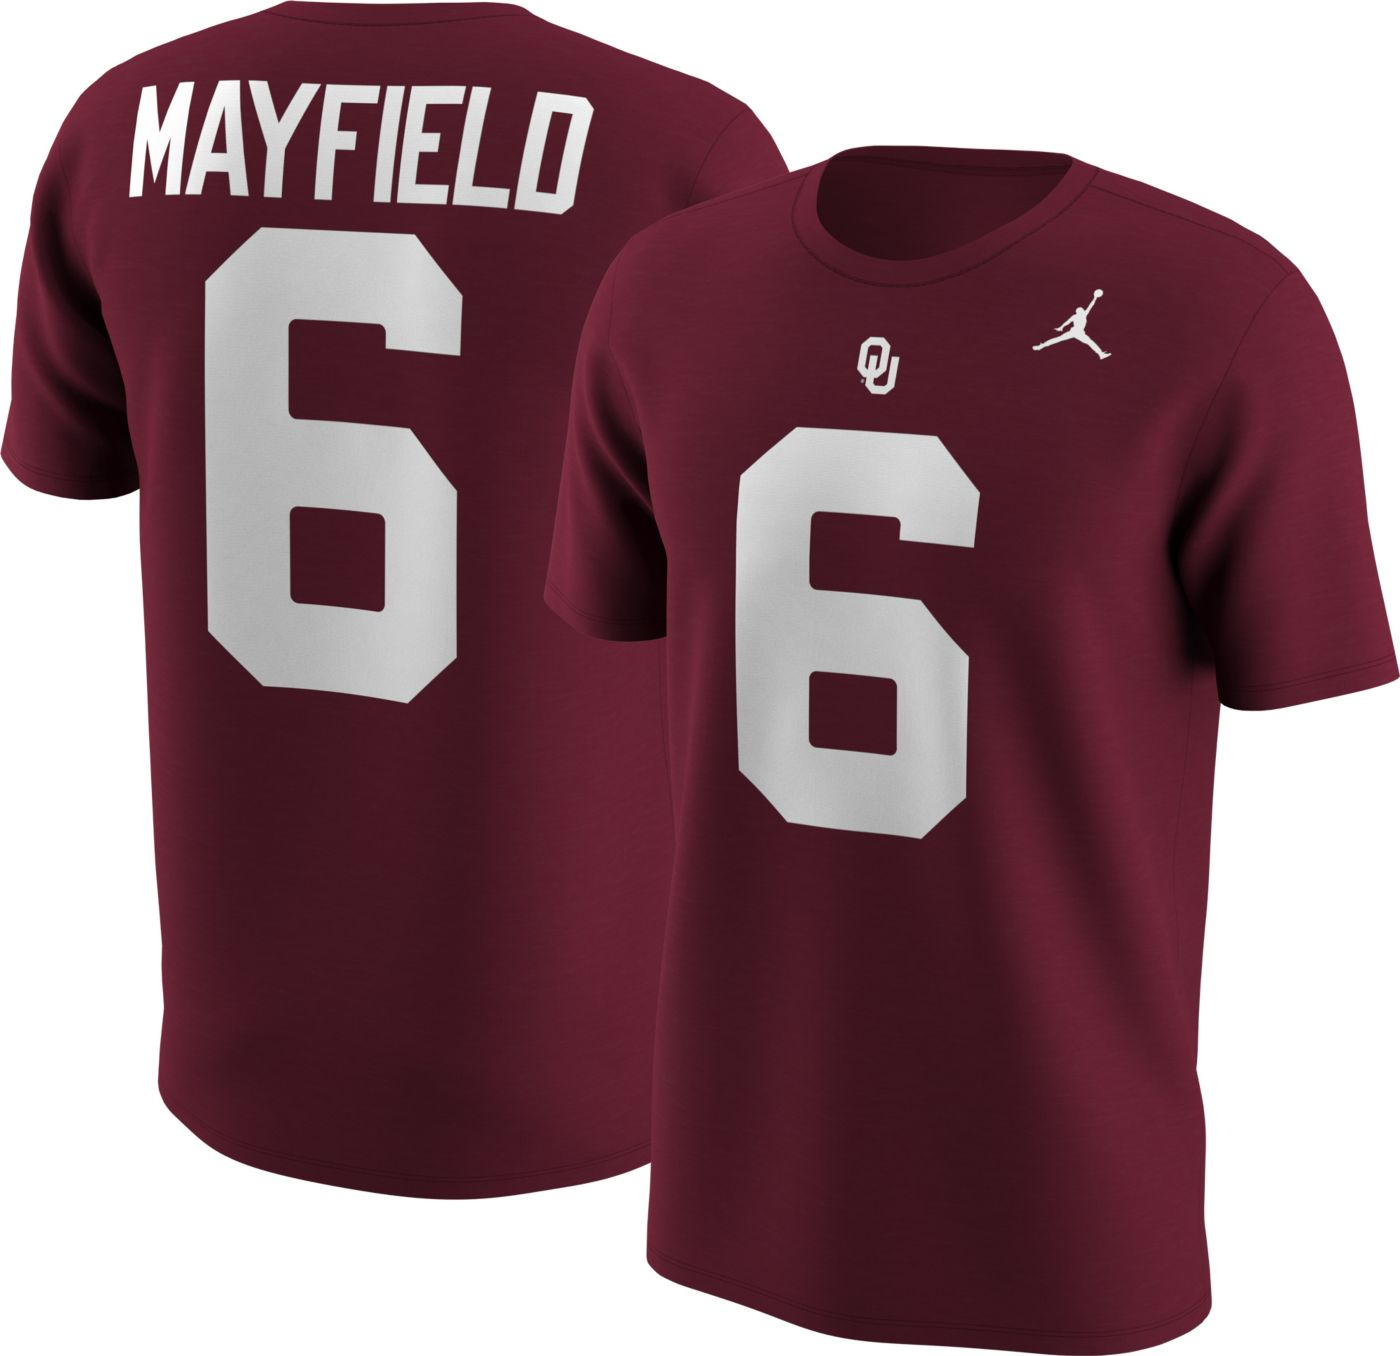 Jordan Men's Oklahoma Sooners Baker Mayfield #6 Crimson Football Jersey T-Shirt